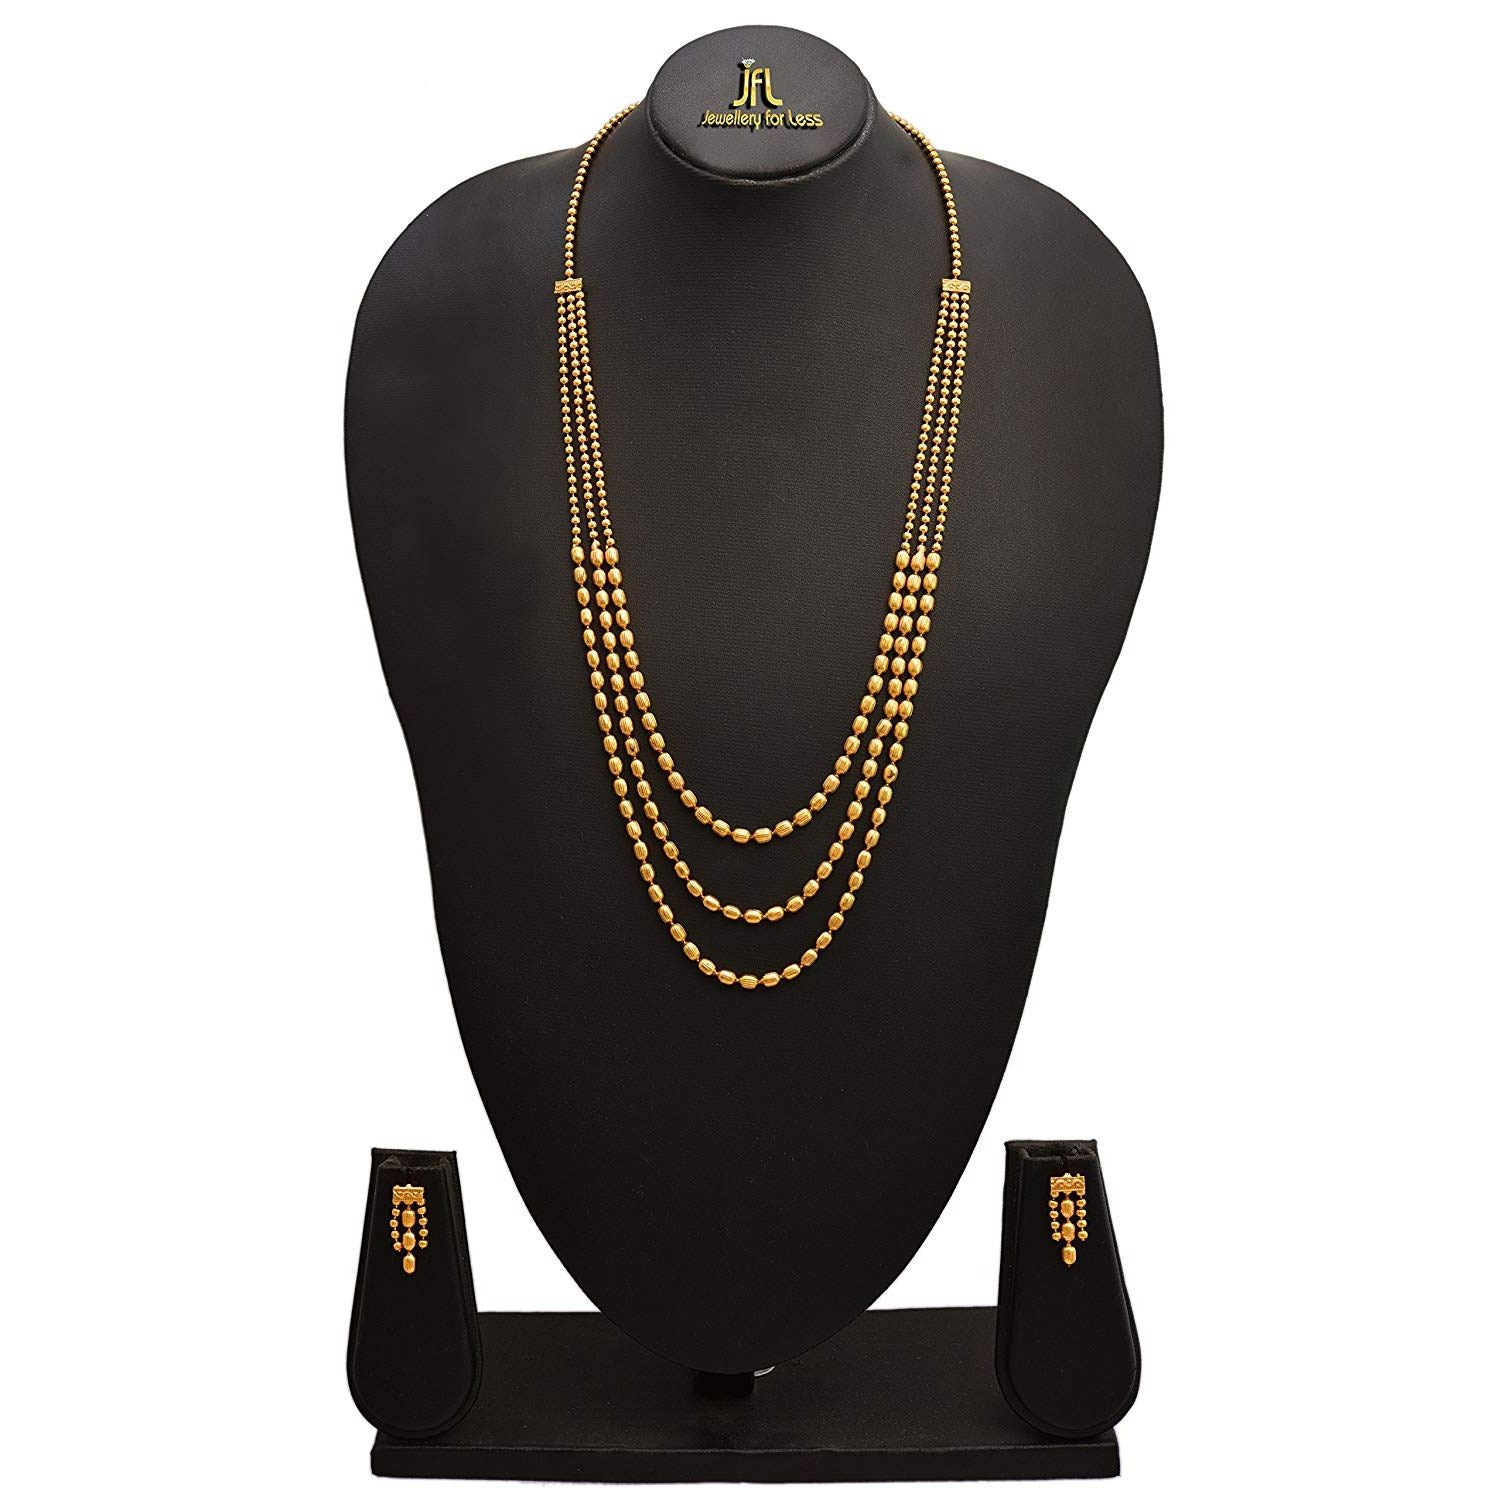 JFL - Traditional Ethnic One Gram Gold Plated Bead Designer Long Necklace Set with Earring for Women and Girls.